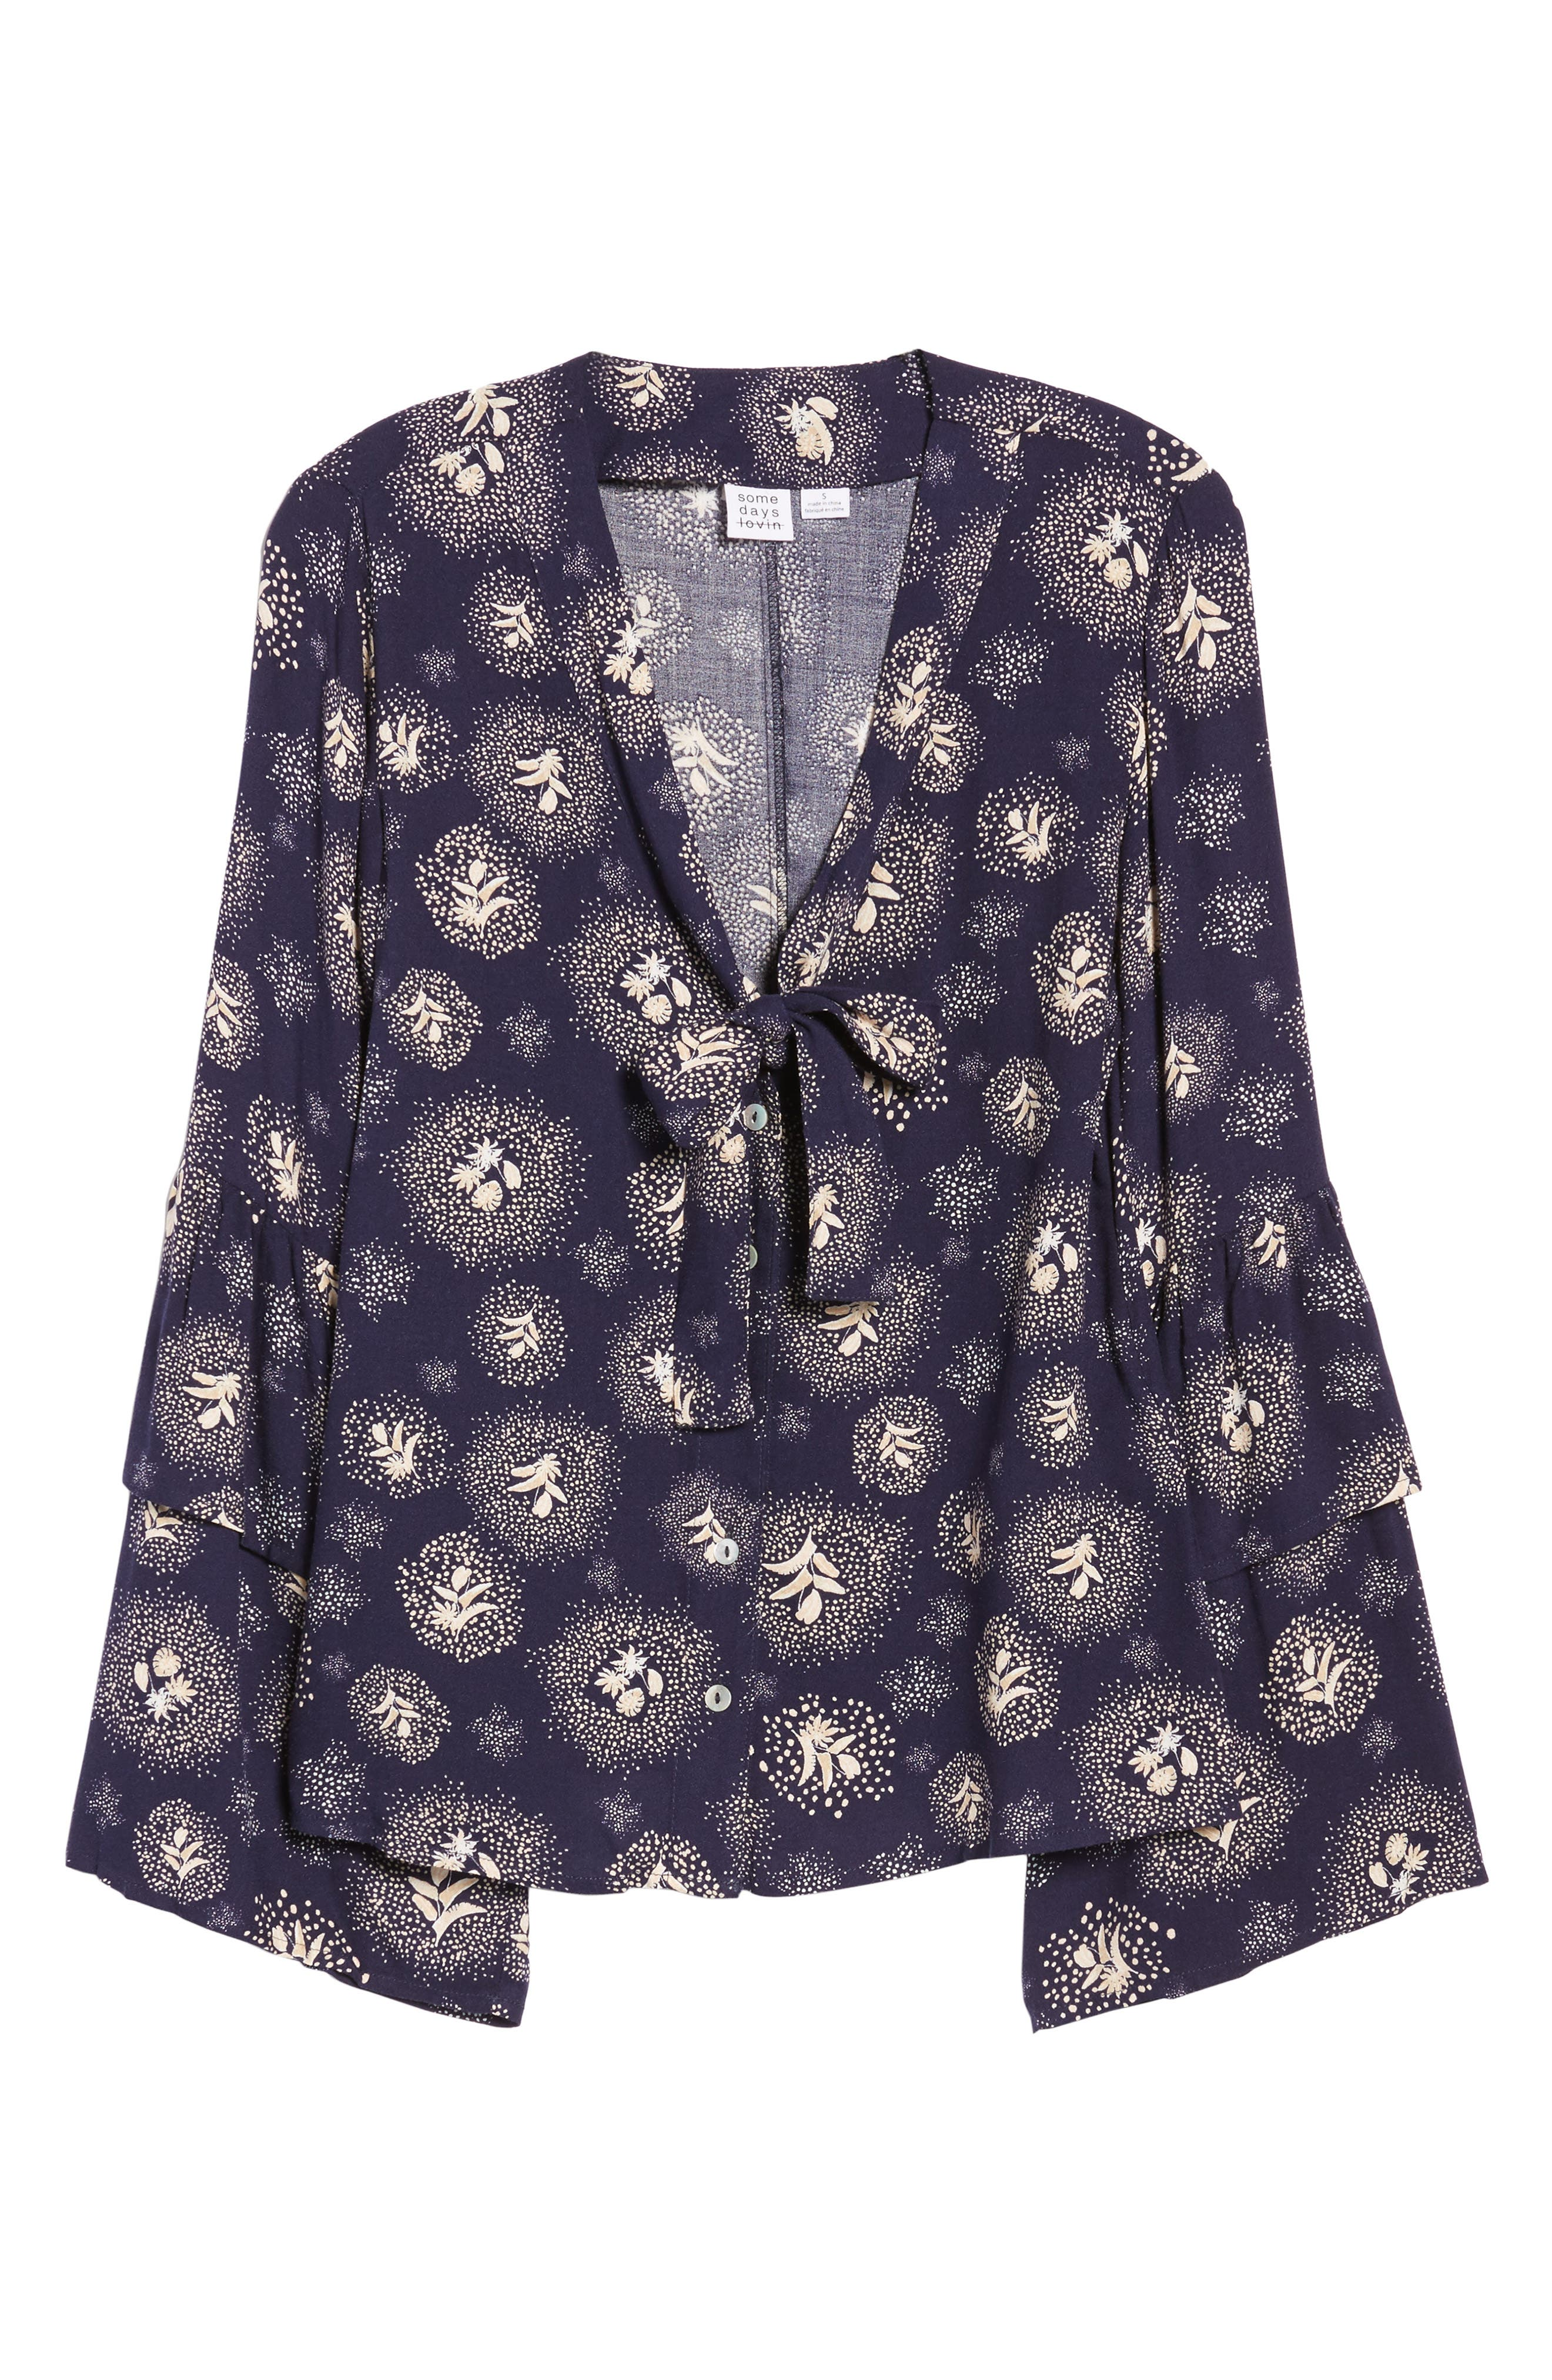 Glimmering Nights Blouse,                             Alternate thumbnail 6, color,